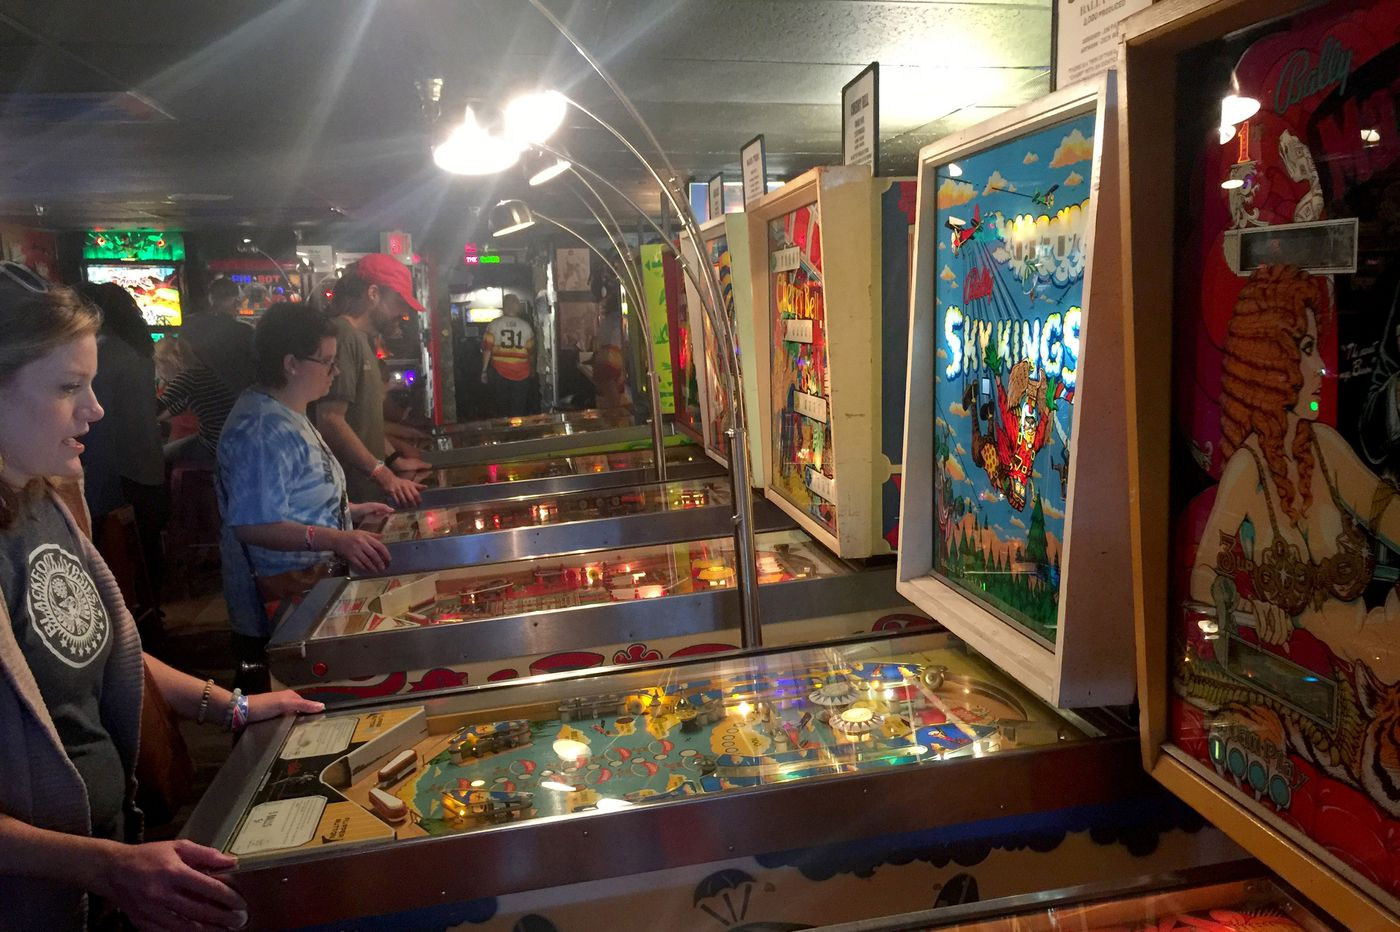 A pinball museum? There has to be a twist